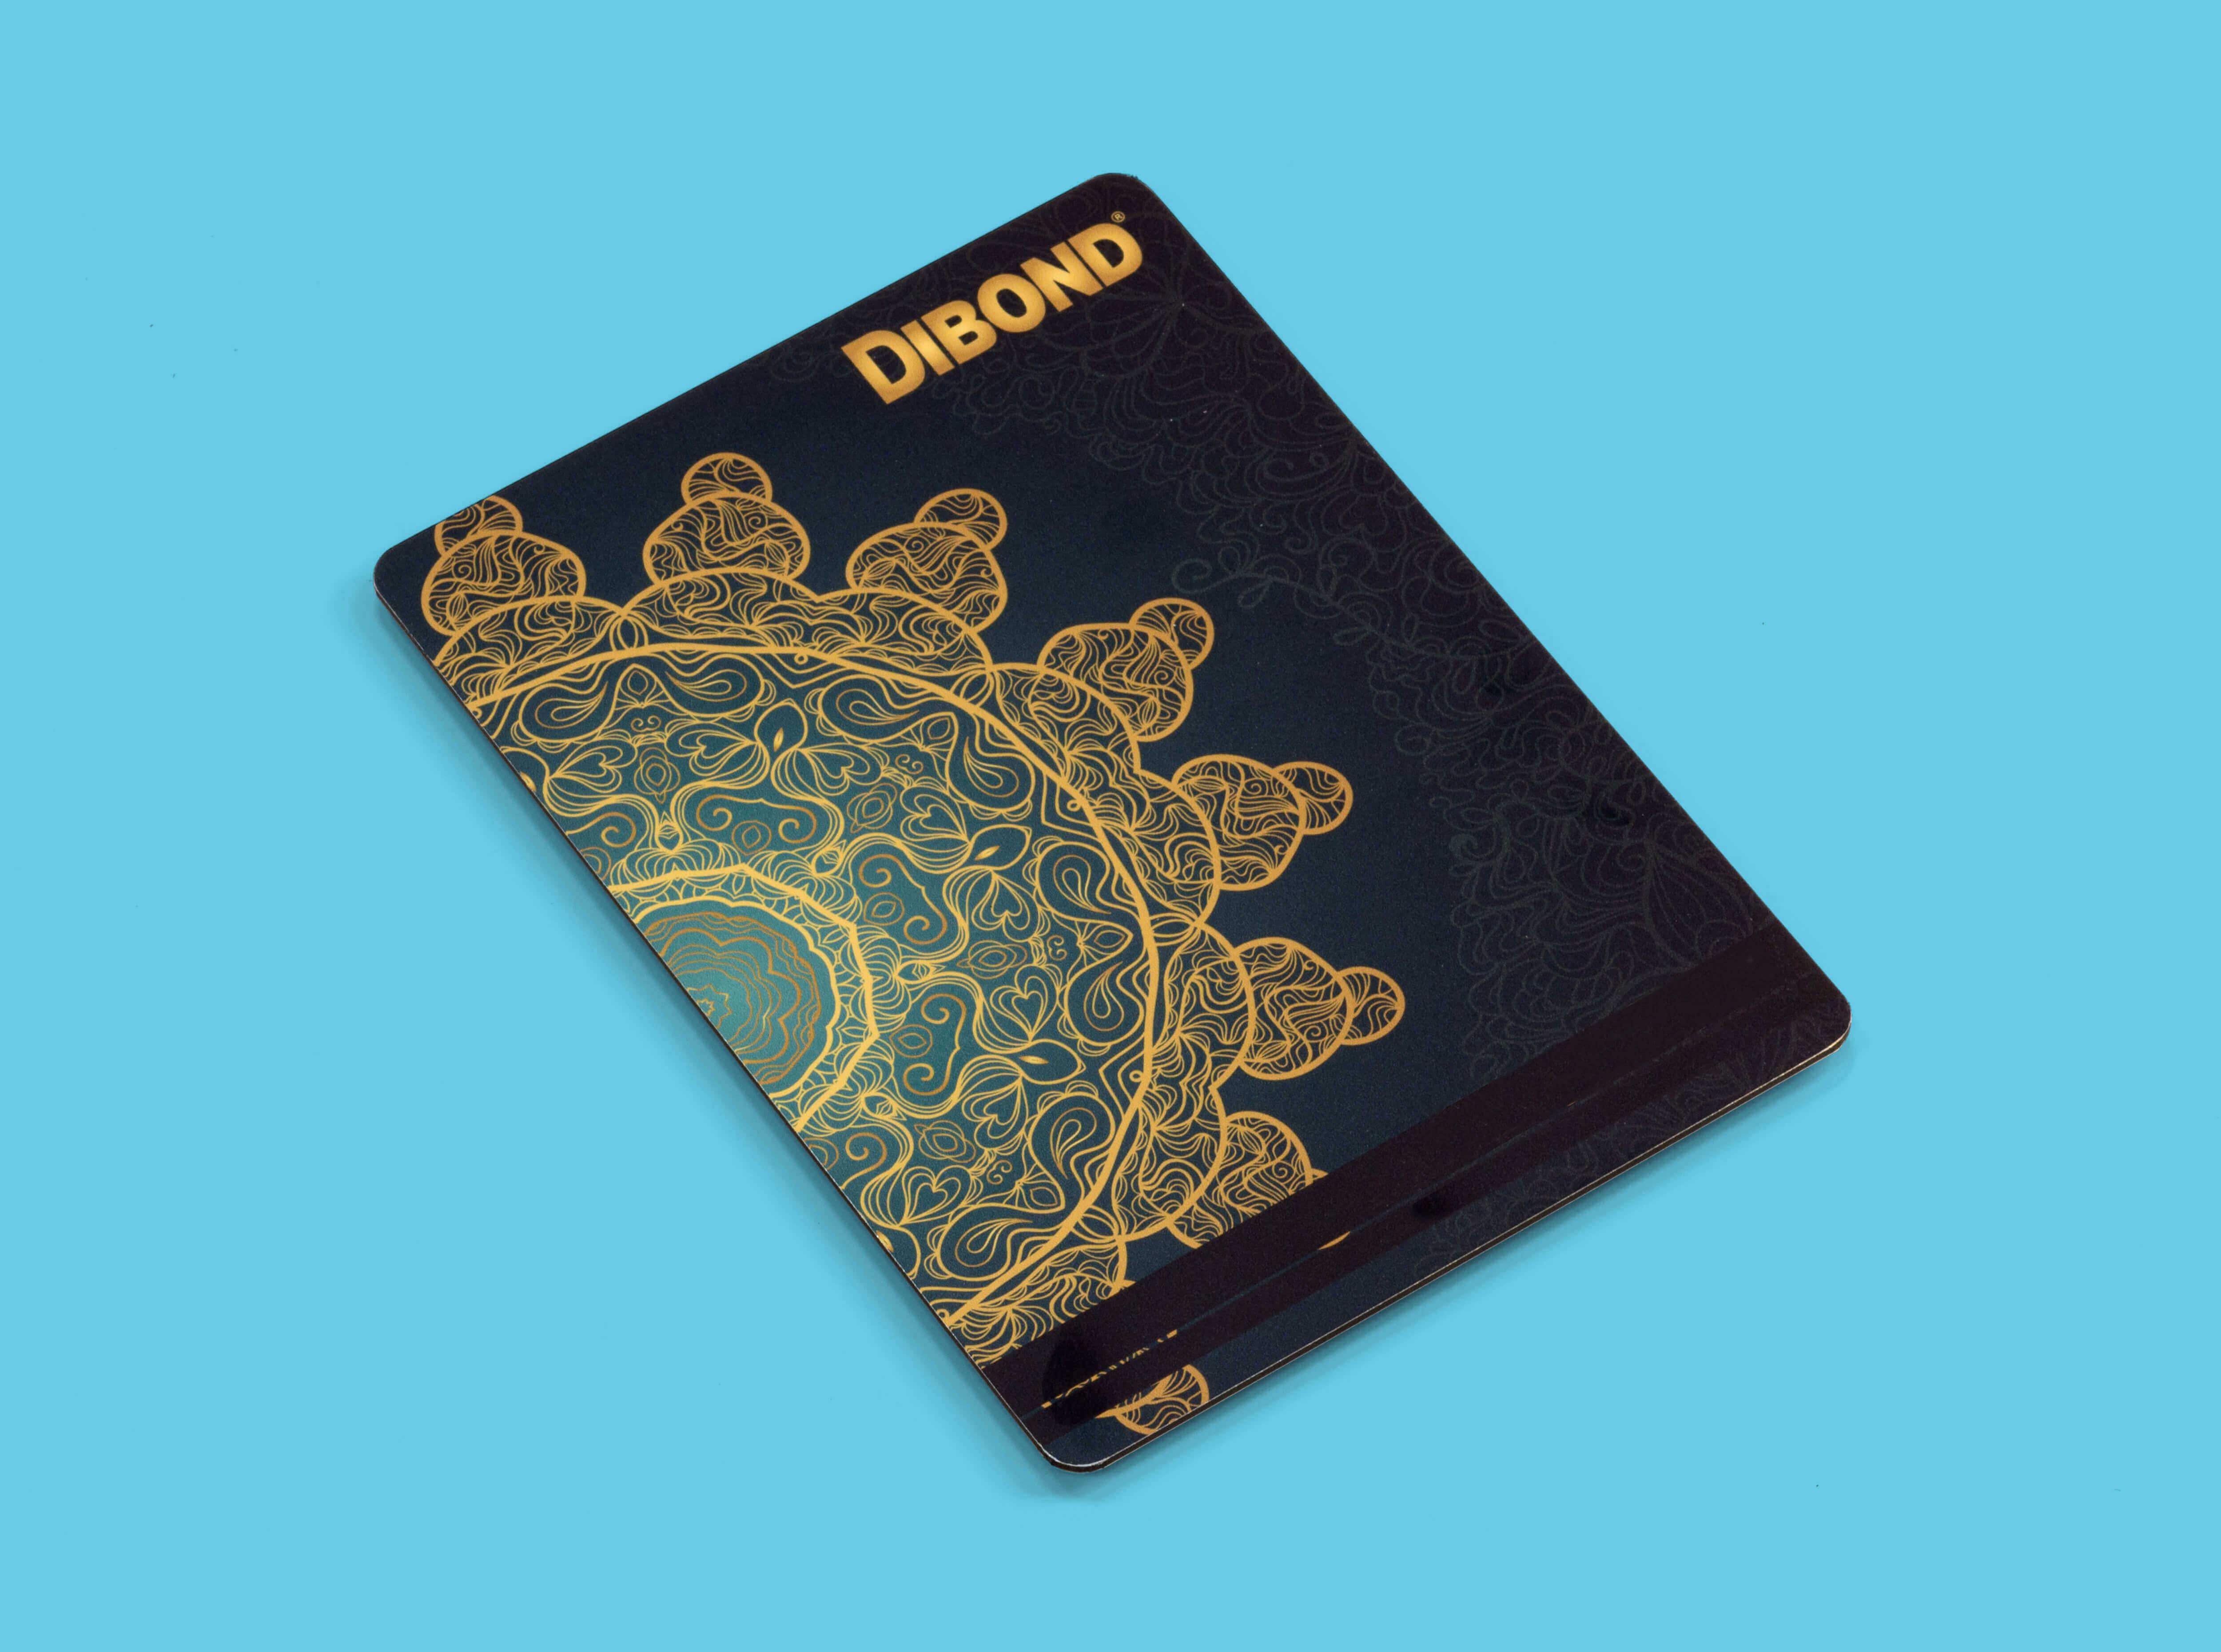 Dibond which is a very rigid and durable material.